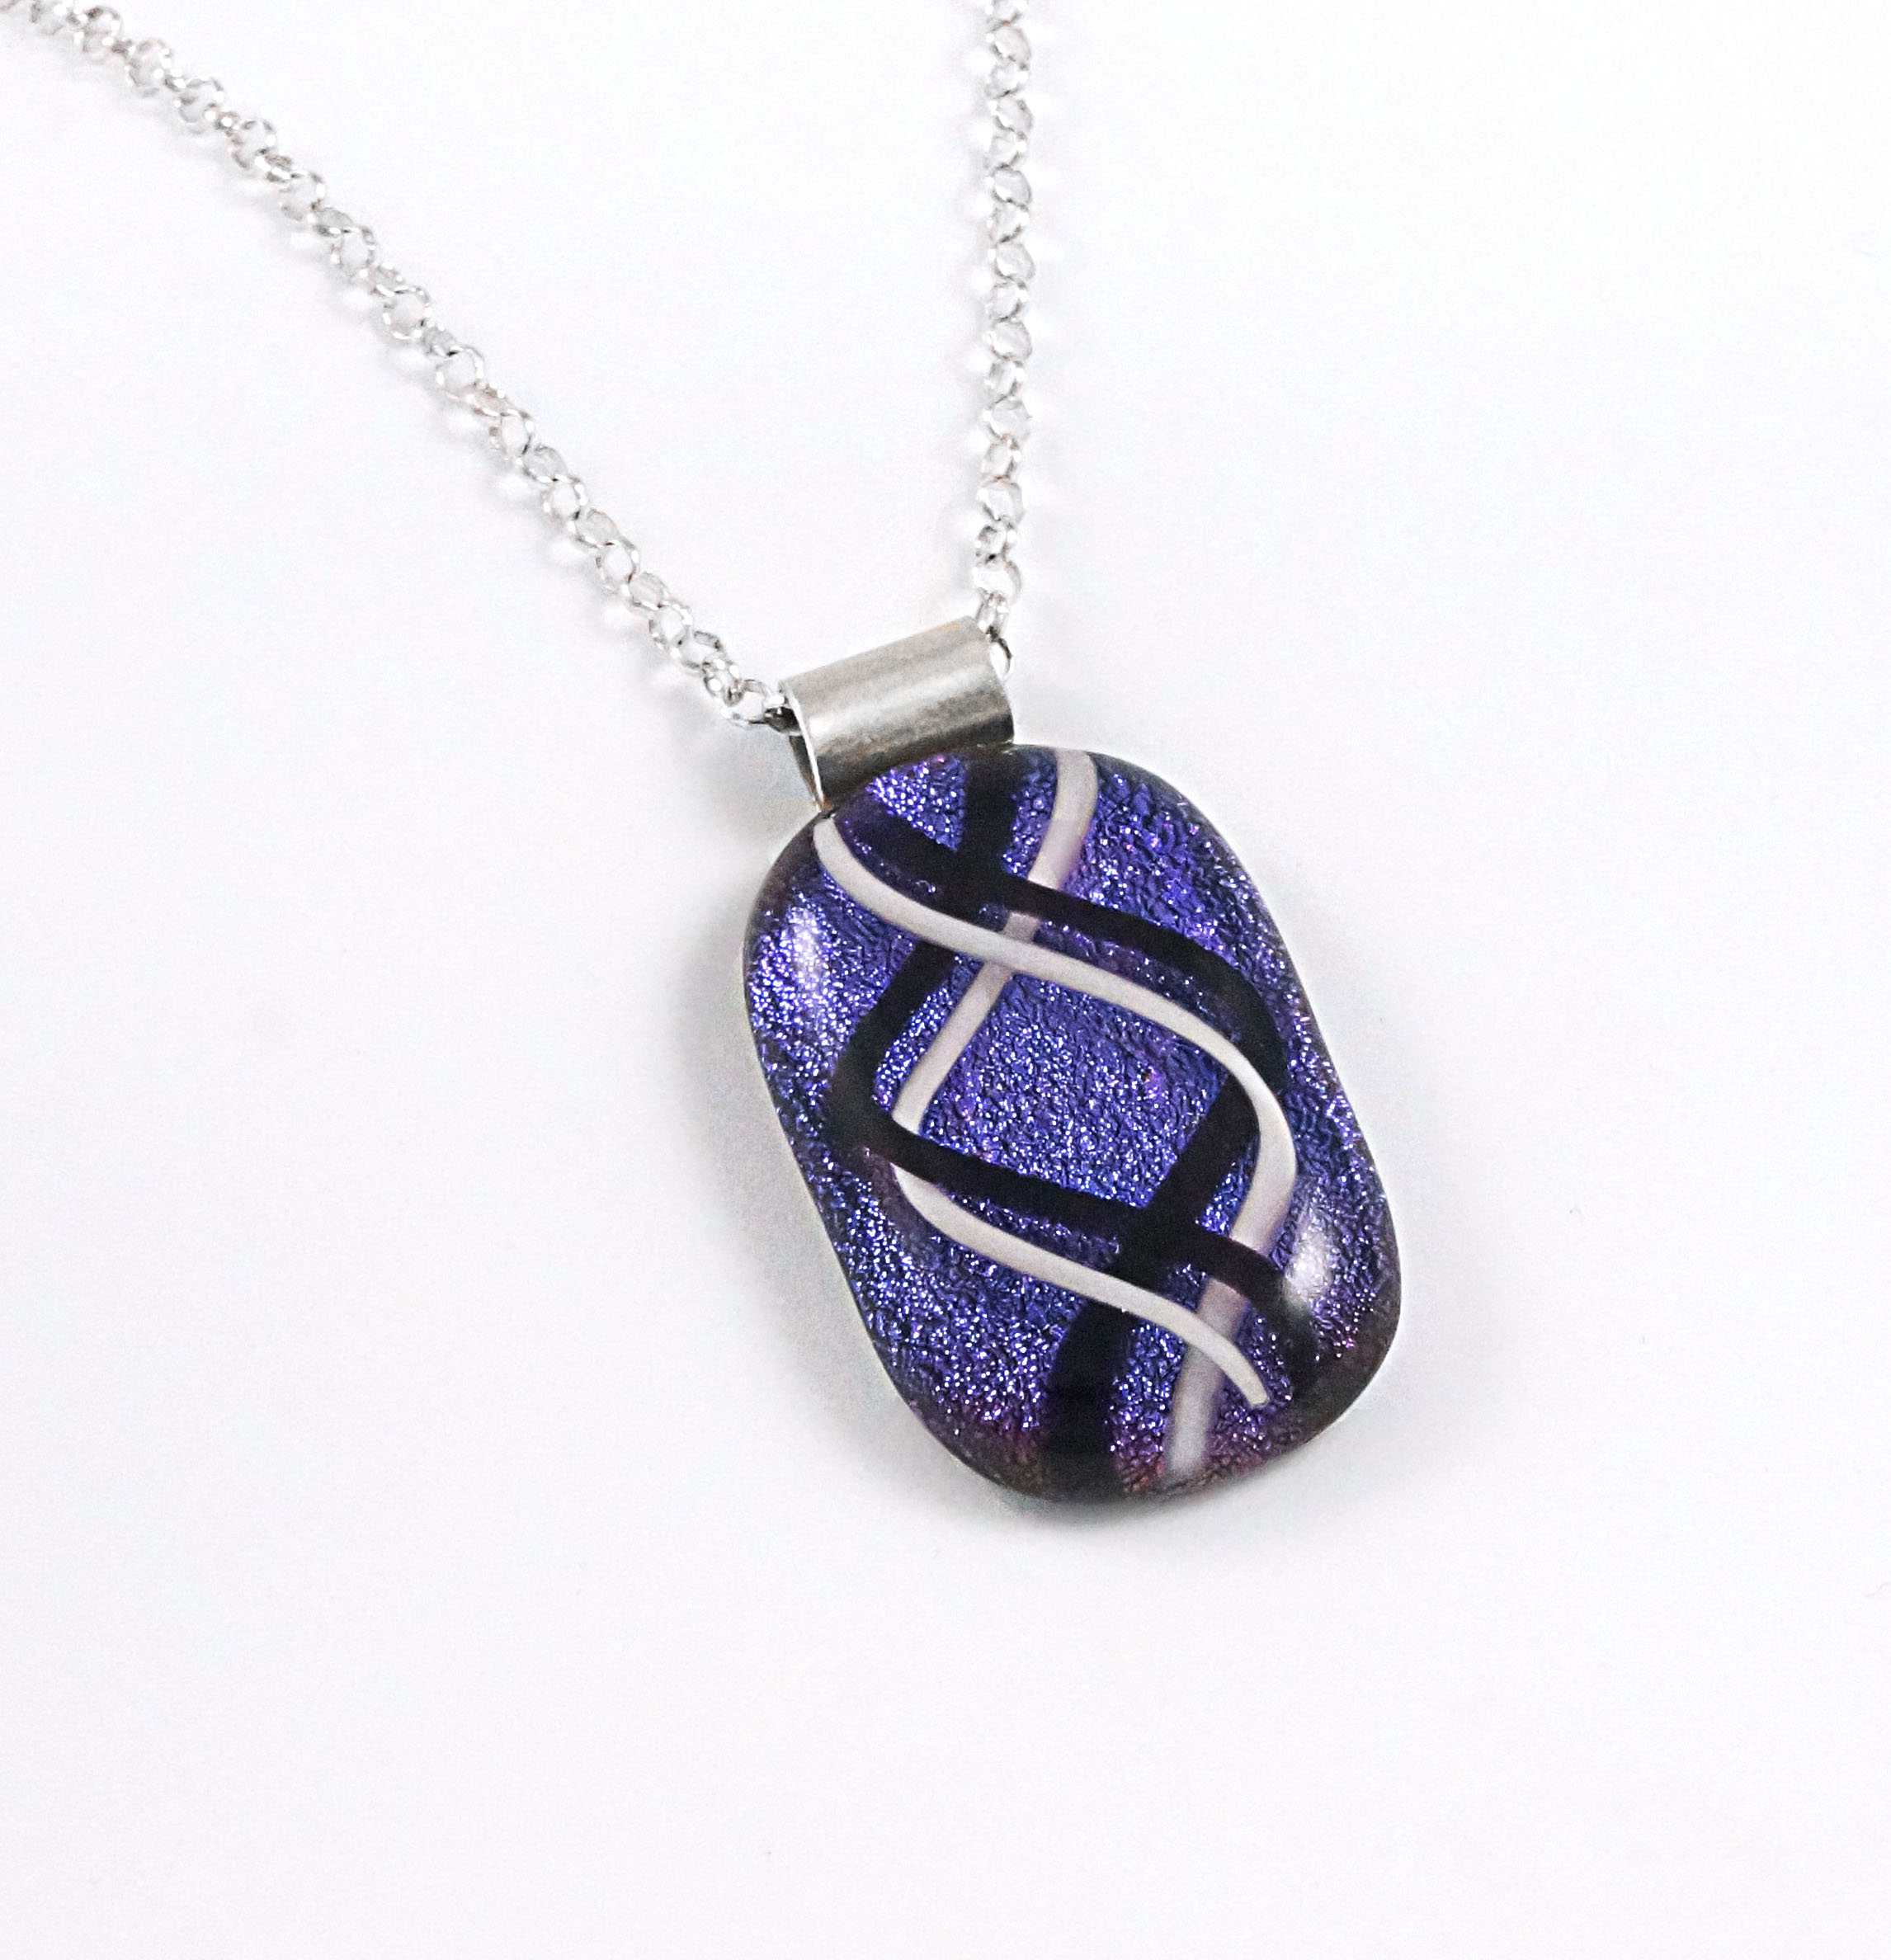 Unique Black, White, Purple Dichroic Fused Glass Pendant